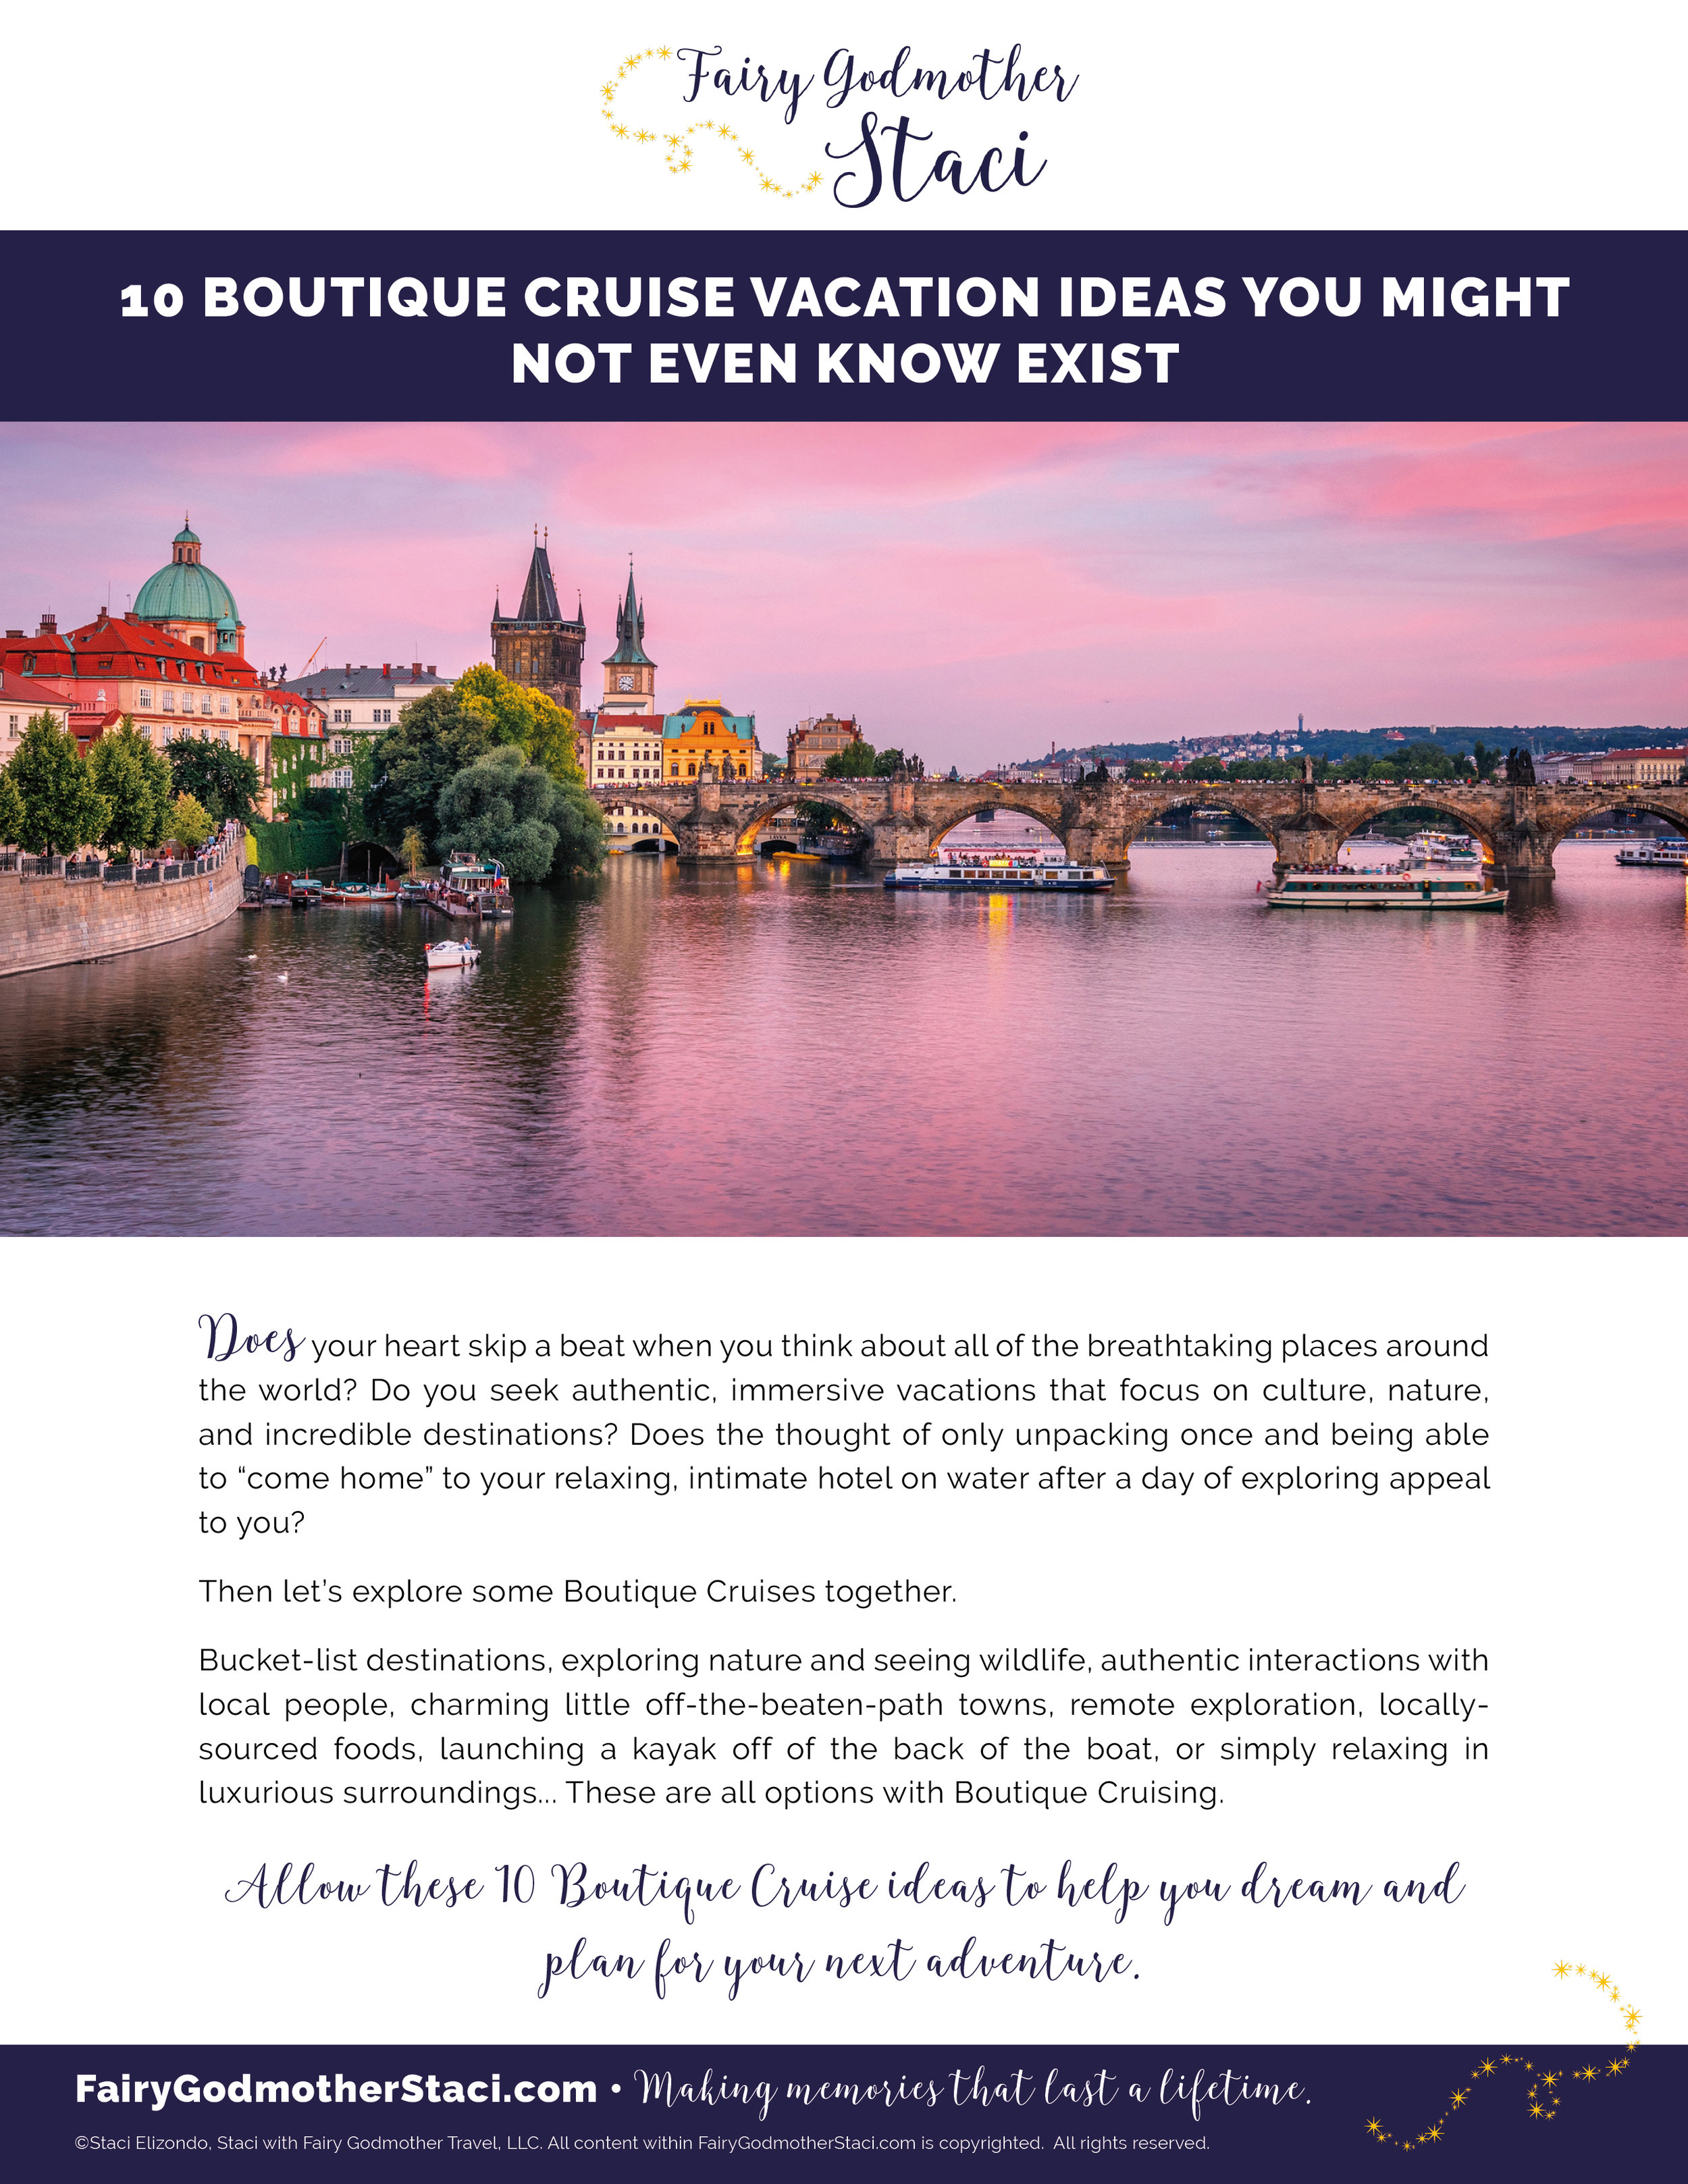 10 Boutique Cruise Vacation Ideas You Might Not Even Know Exist.jpg